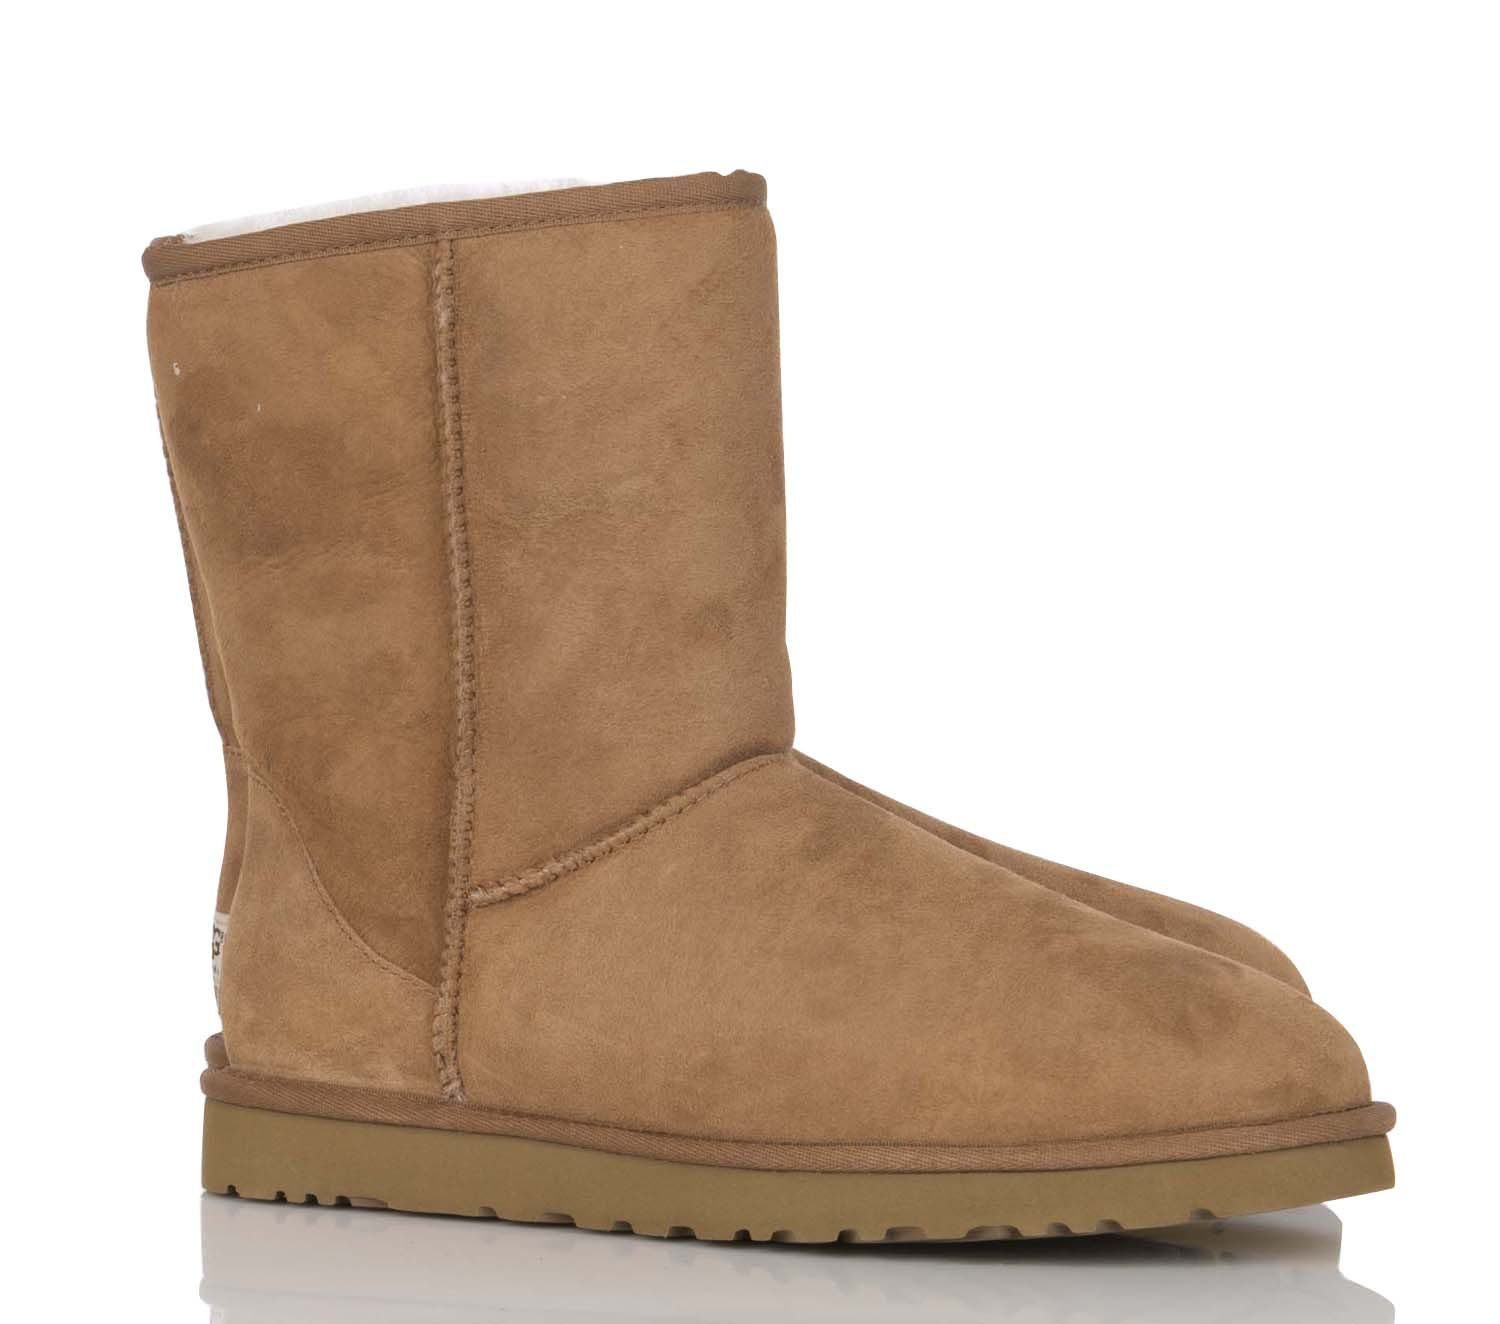 bba1630558ab boots fourrées ugg